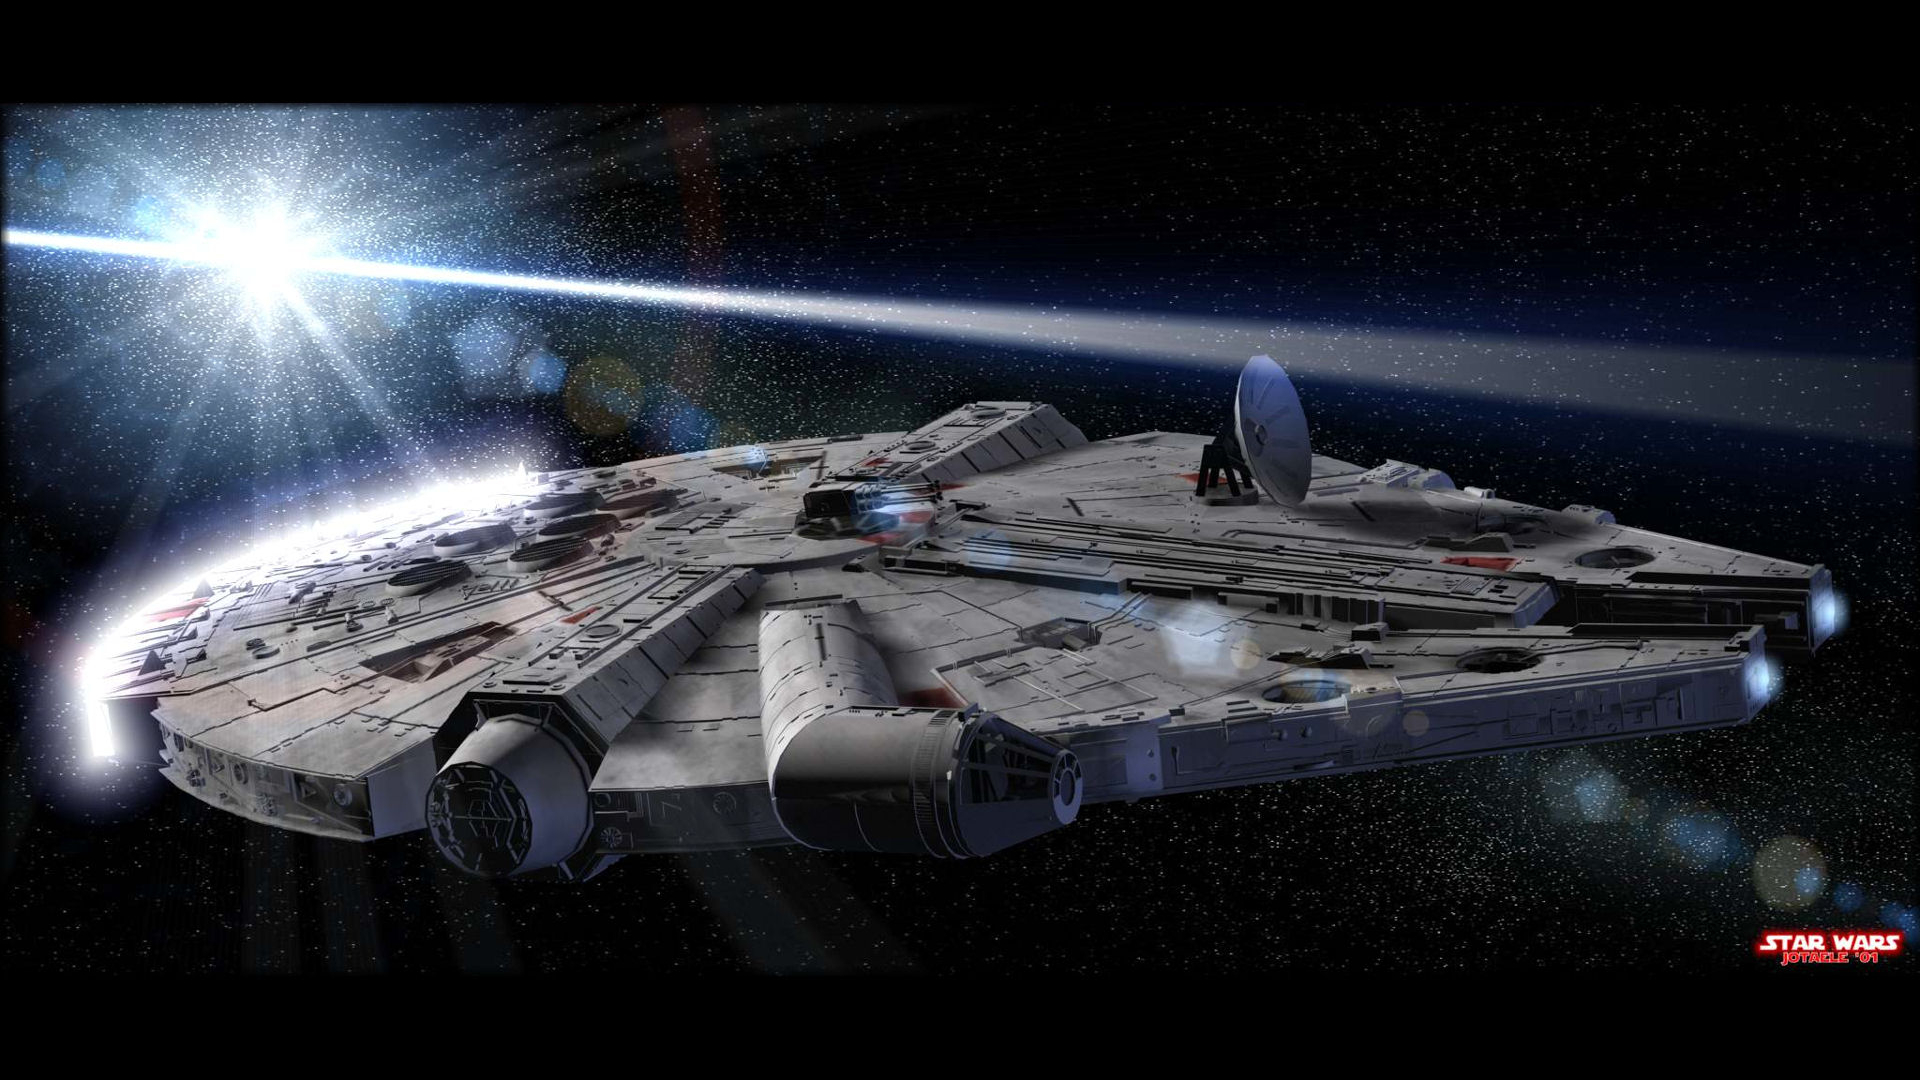 Free Download Star Wars Wallpaper Set 5 Awesome Wallpapers 1920x1200 For Your Desktop Mobile Tablet Explore 48 Star Wars Windows 8 Wallpaper Star Wars Wallpaper Download Star Wars Empire